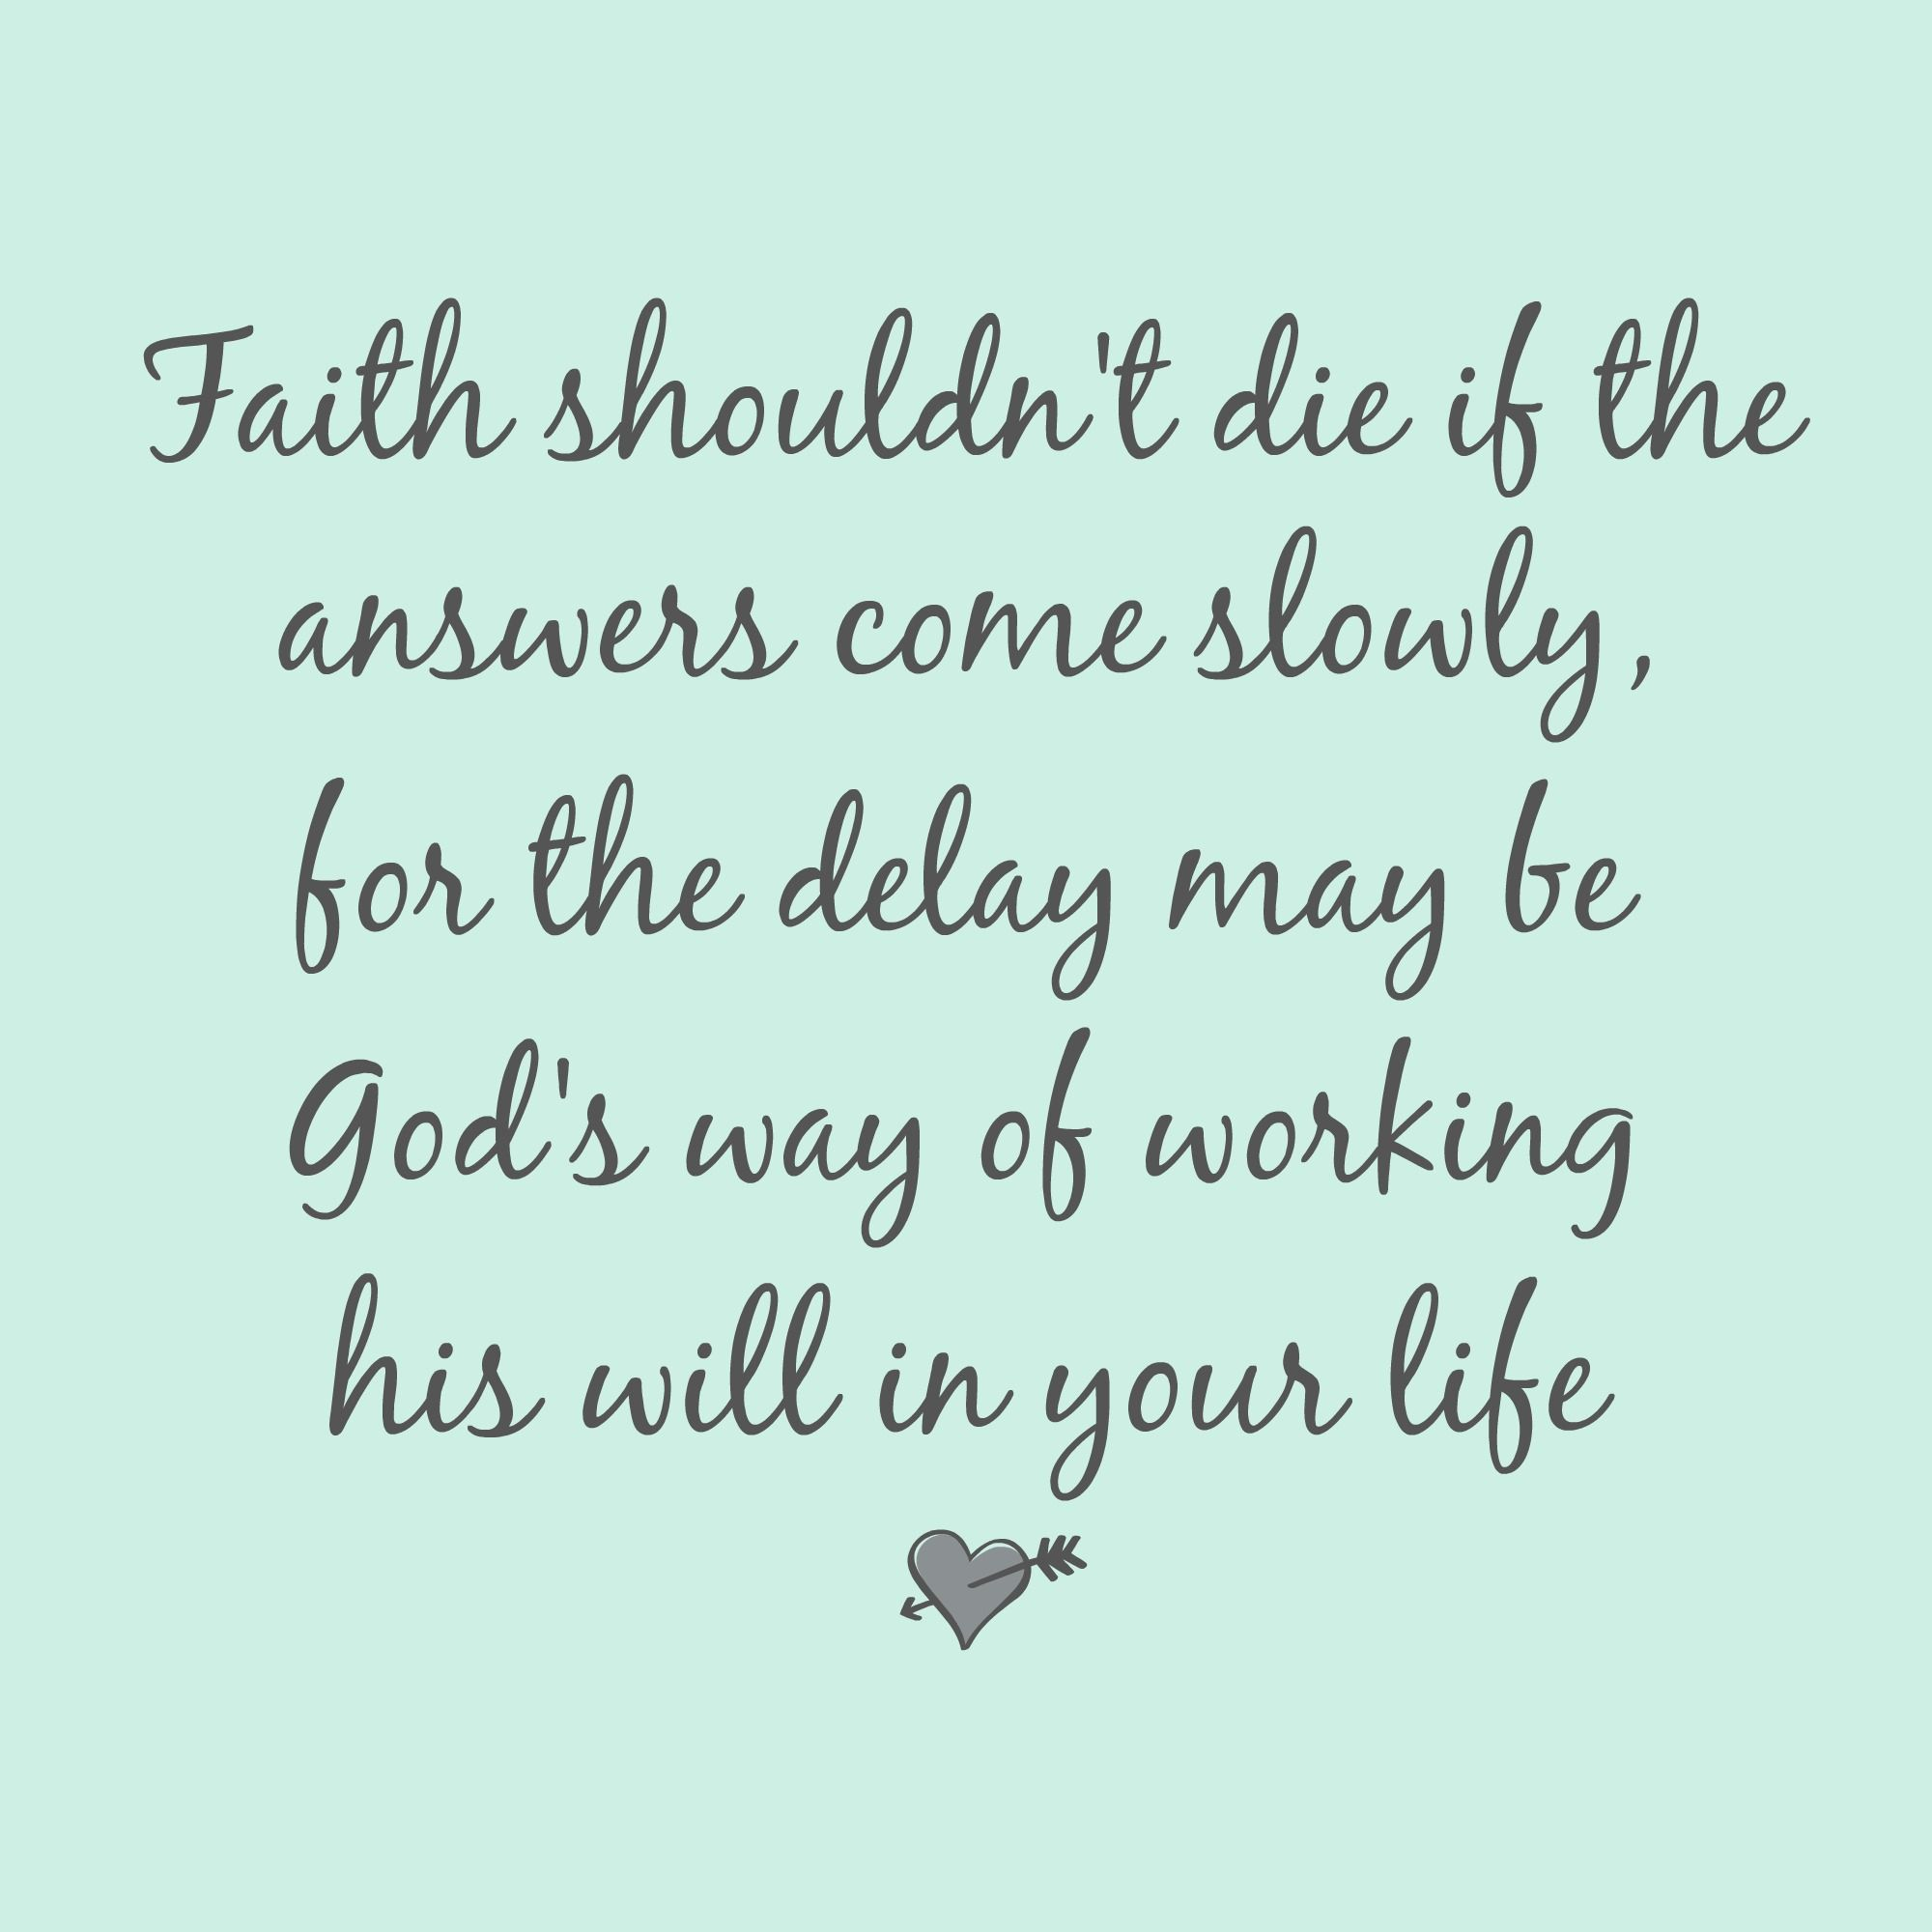 Image of: Keep Great Inspirational Quotes From Footprints Of Inspiration Faith Shouldnt Die If The Answers Come Slowly For The Delay May Be Gods Way Of Working His Pinterest Great Inspirational Quotes From Footprints Of Inspiration Faith